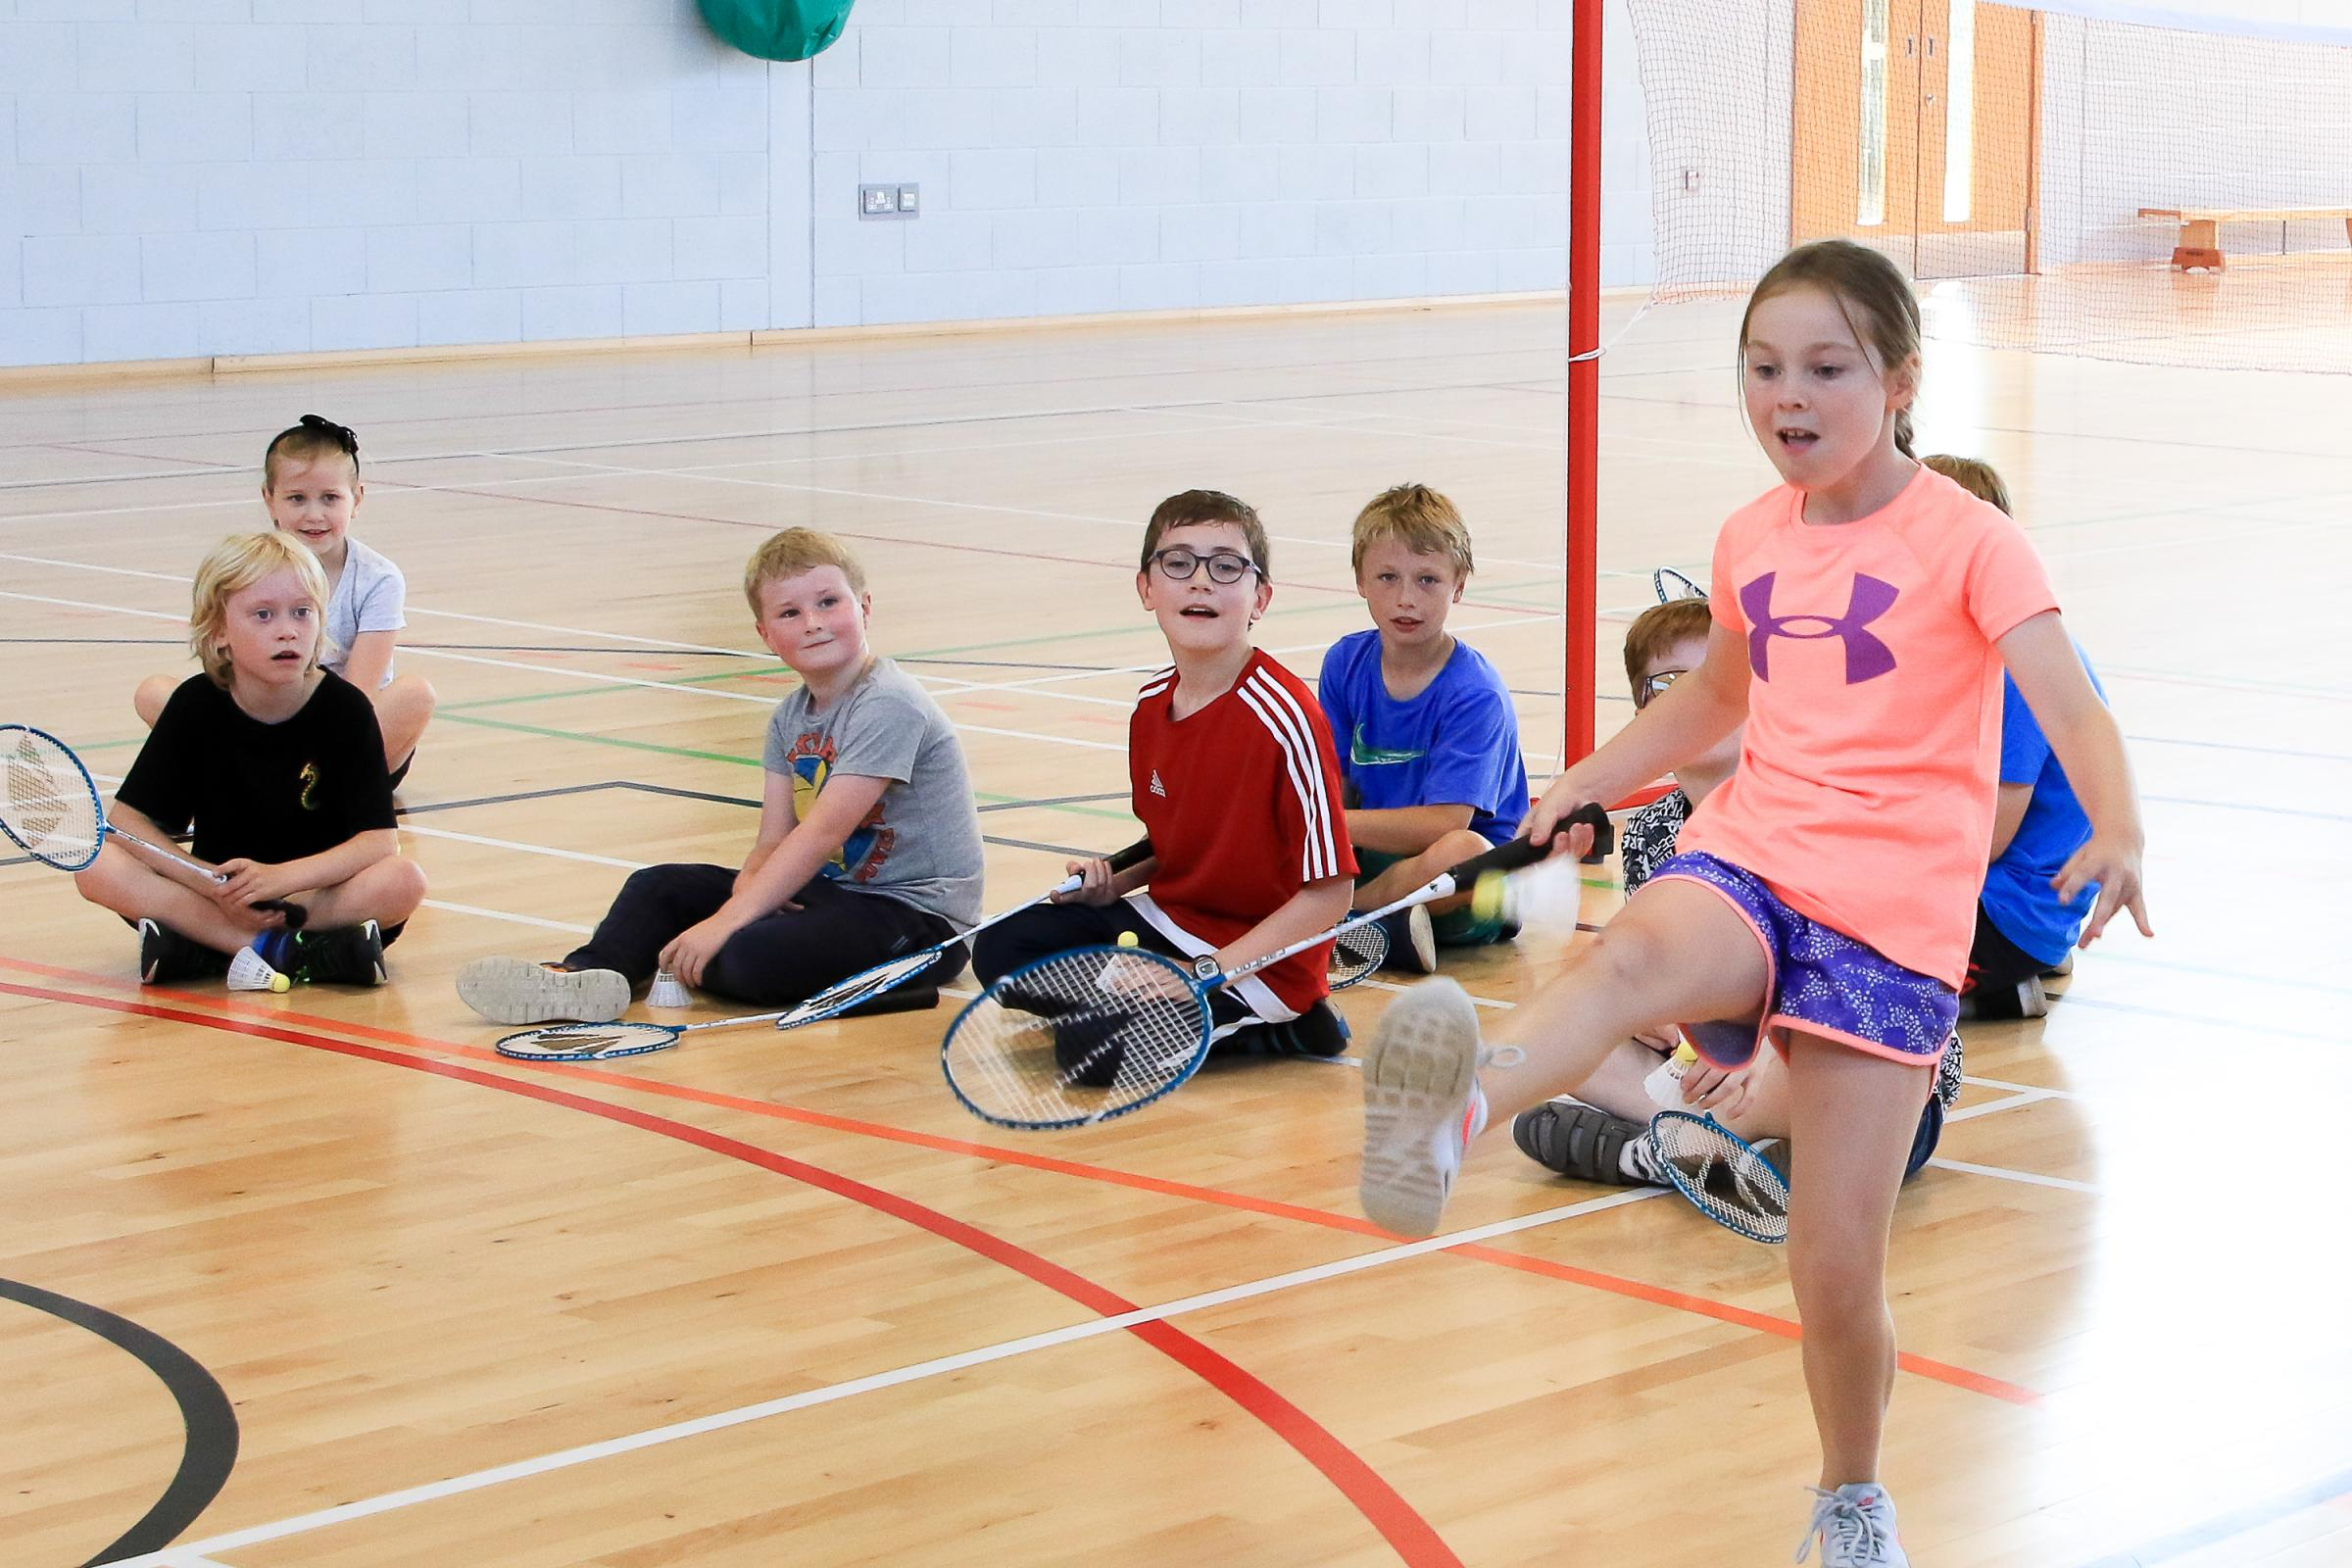 Badminton aces hold court